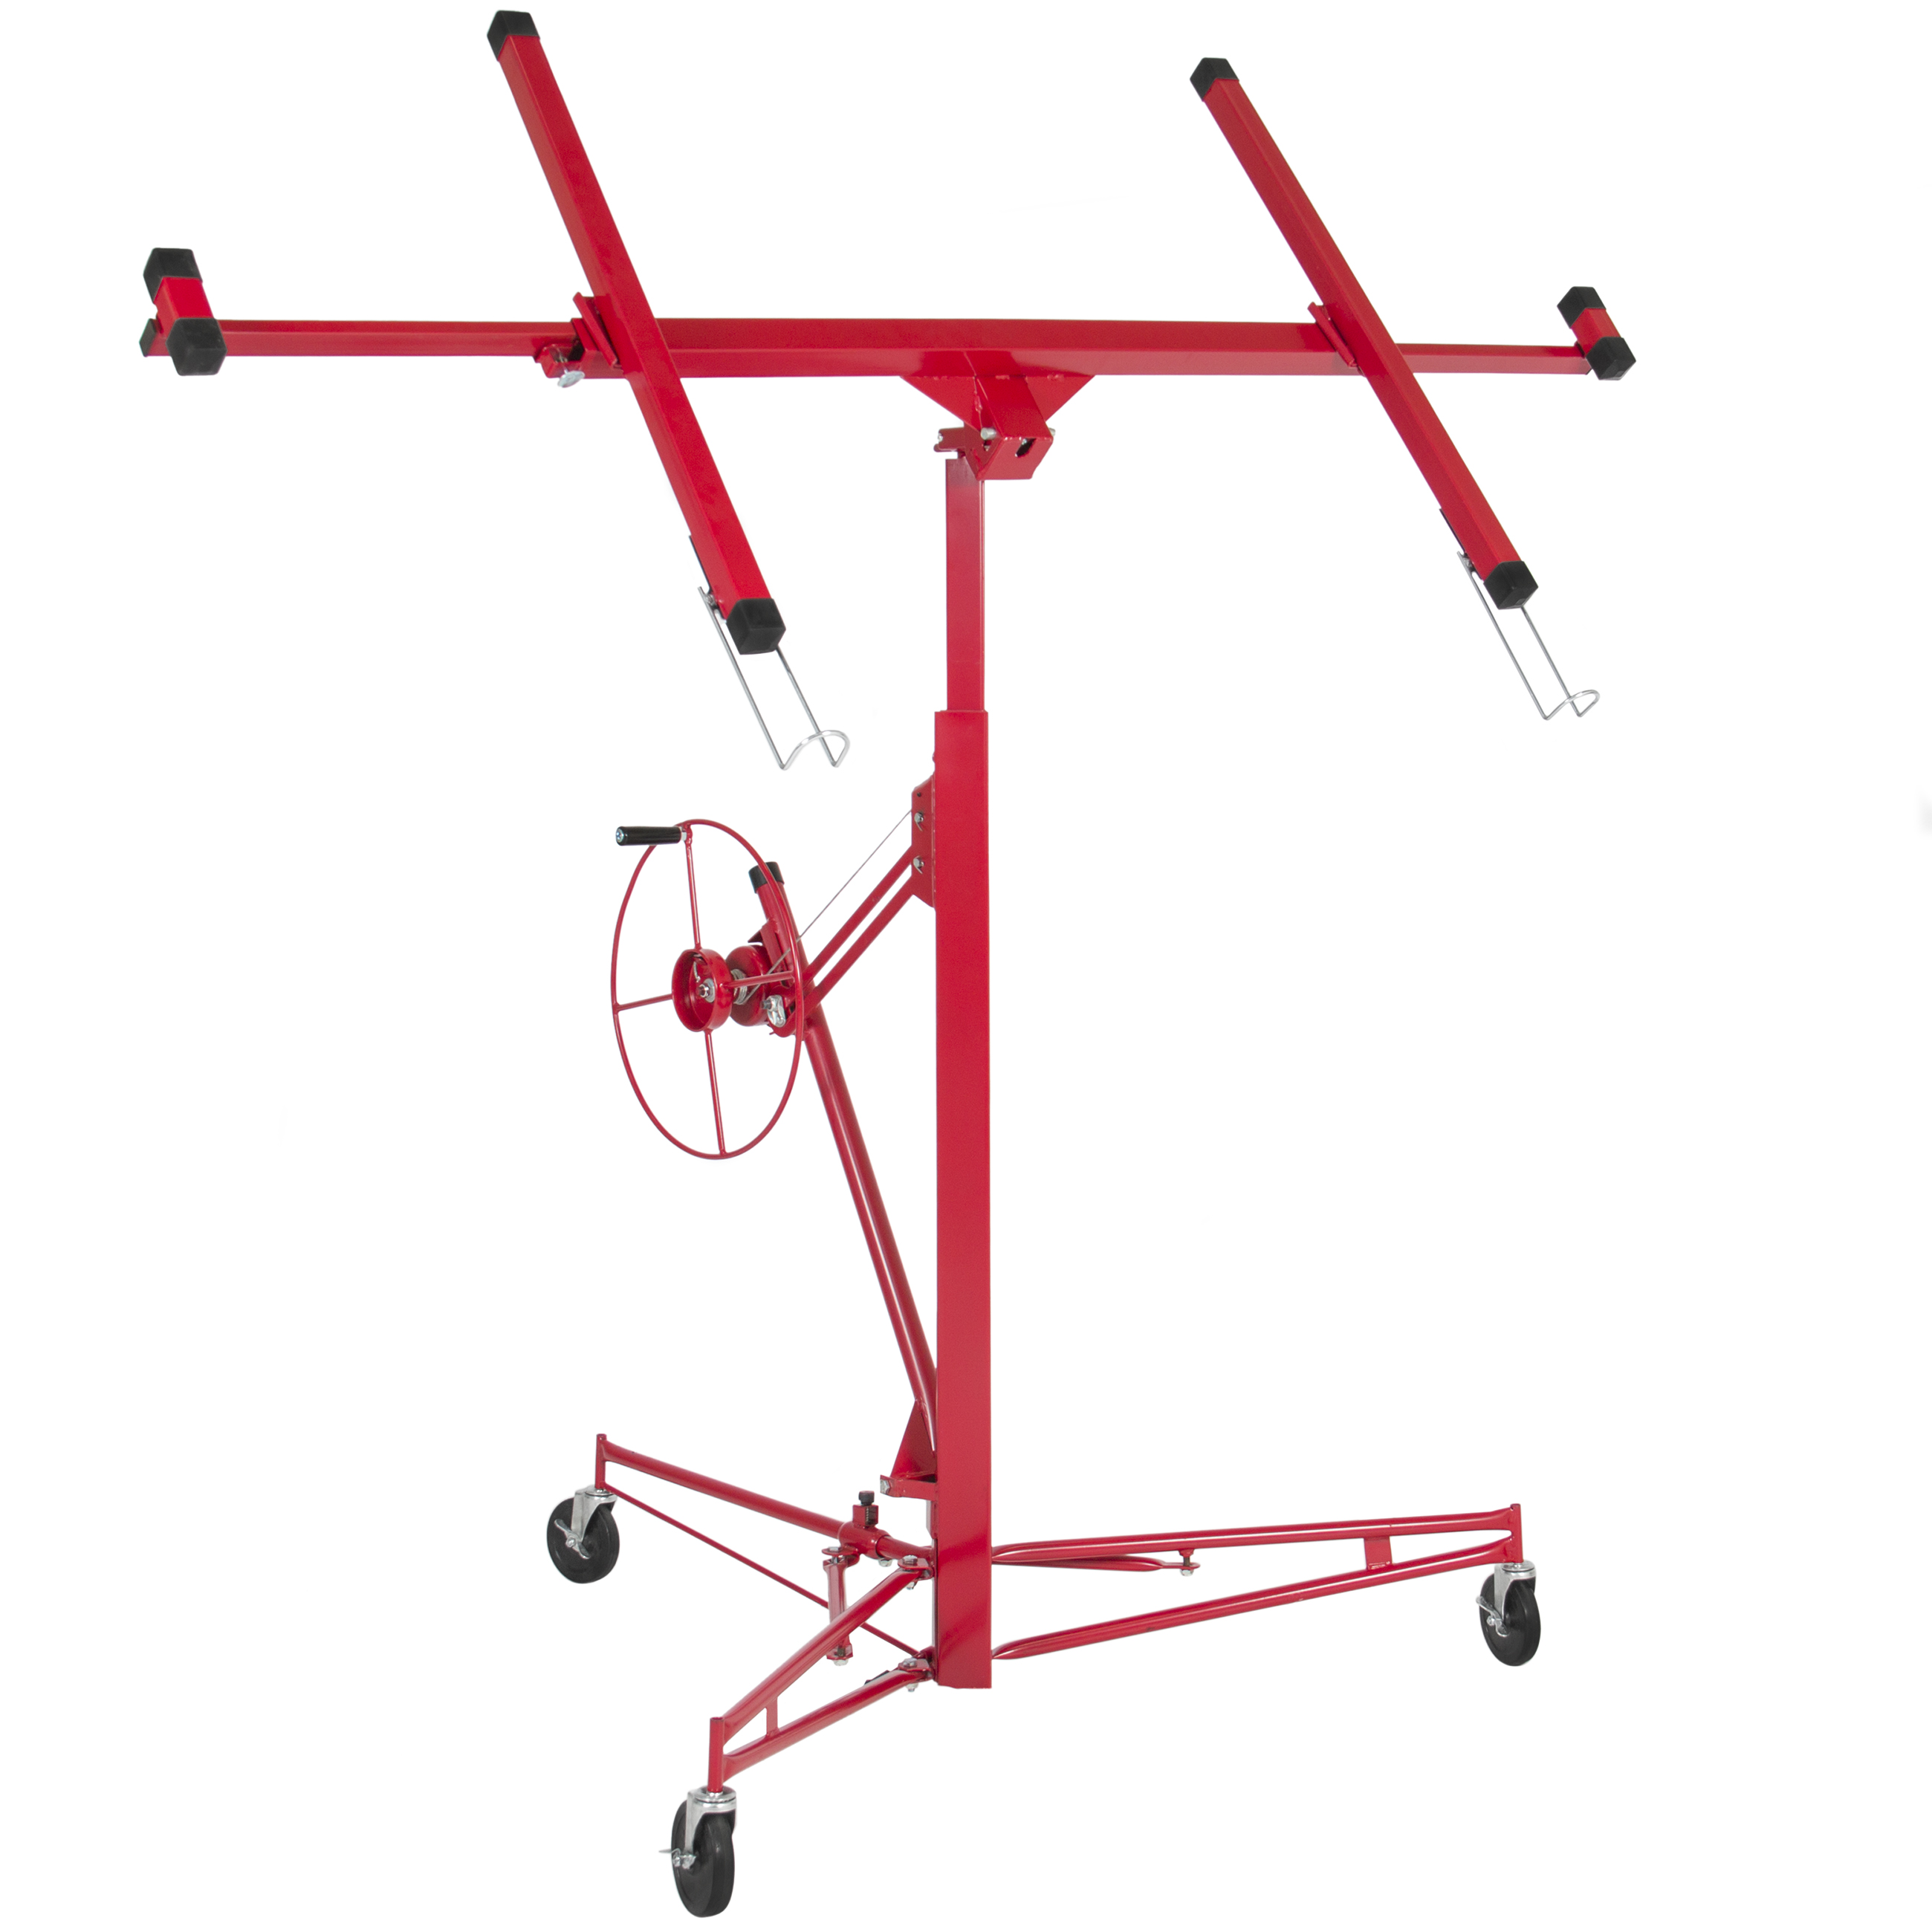 Best Choice Products 11ft Drywall Lift Panel HoistJack Lifter Construction Tool w/ Caster Wheels -Red